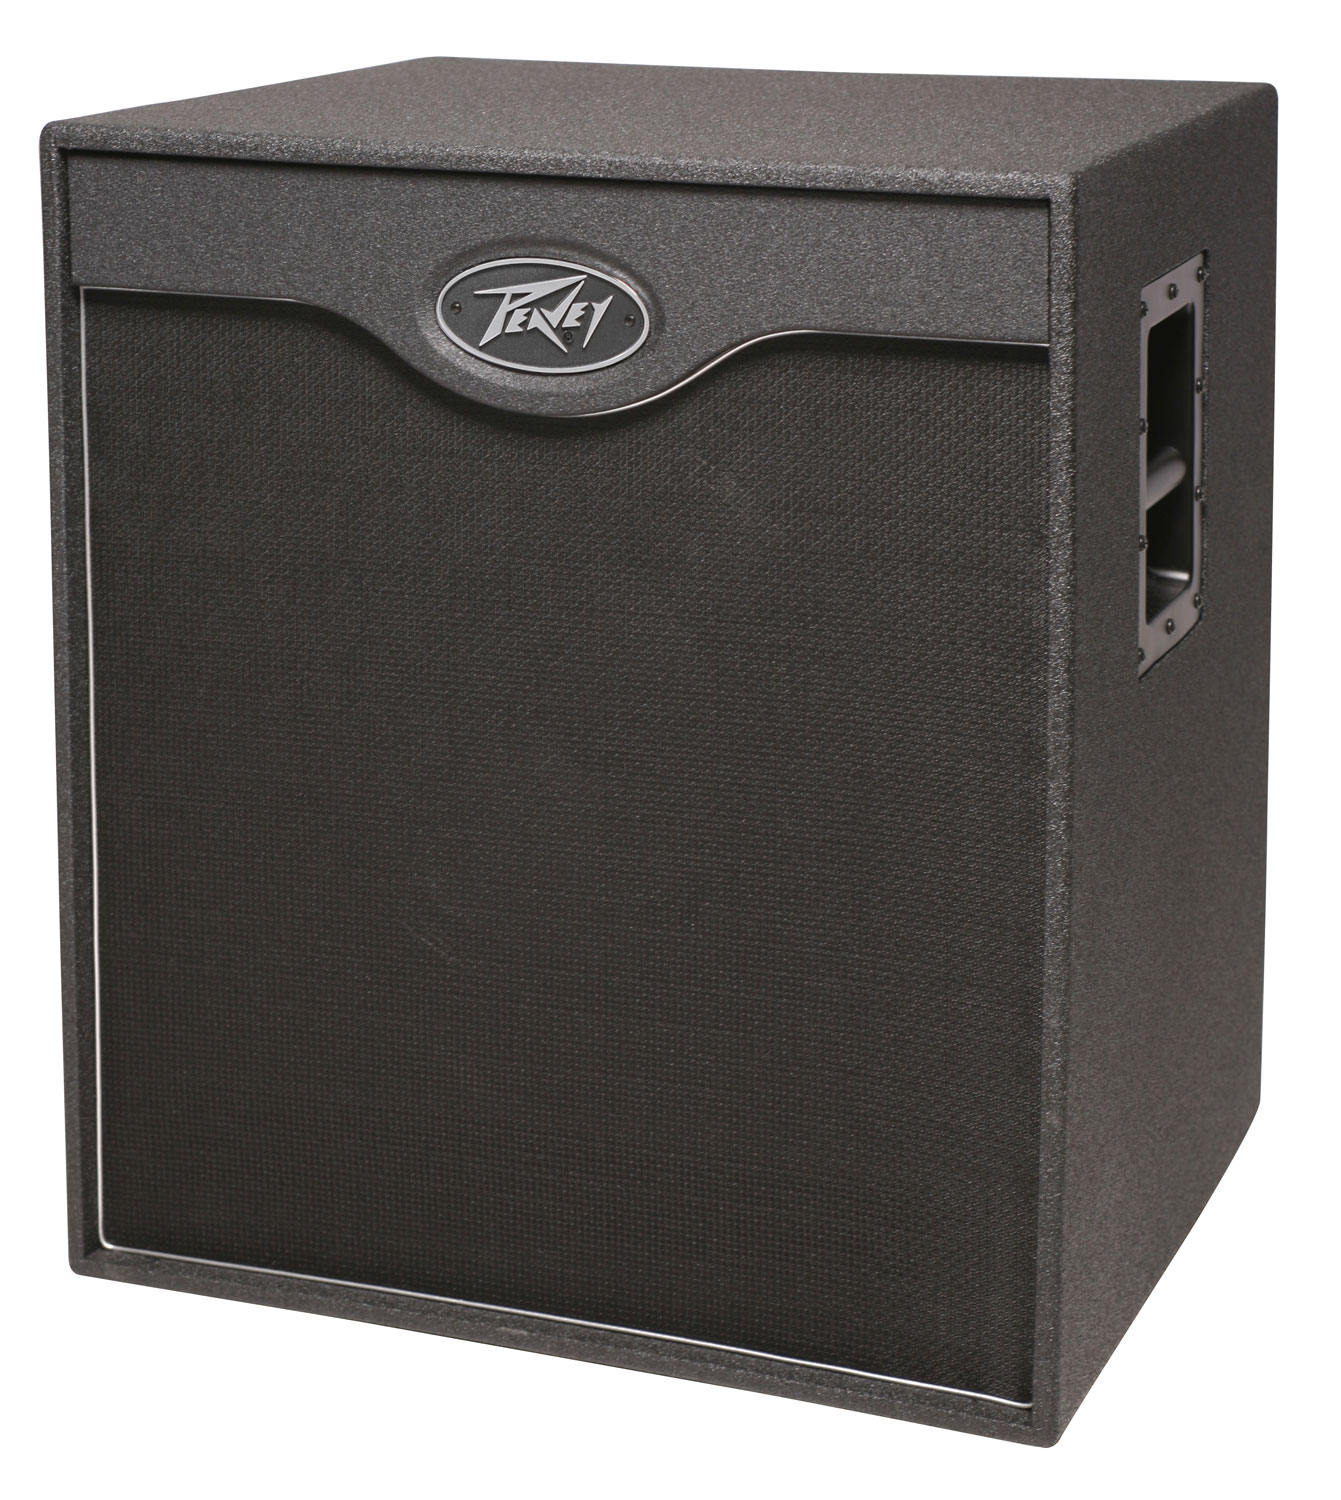 Peavey Vb 115 1400 Watts Power 15 Inch Vented Bass